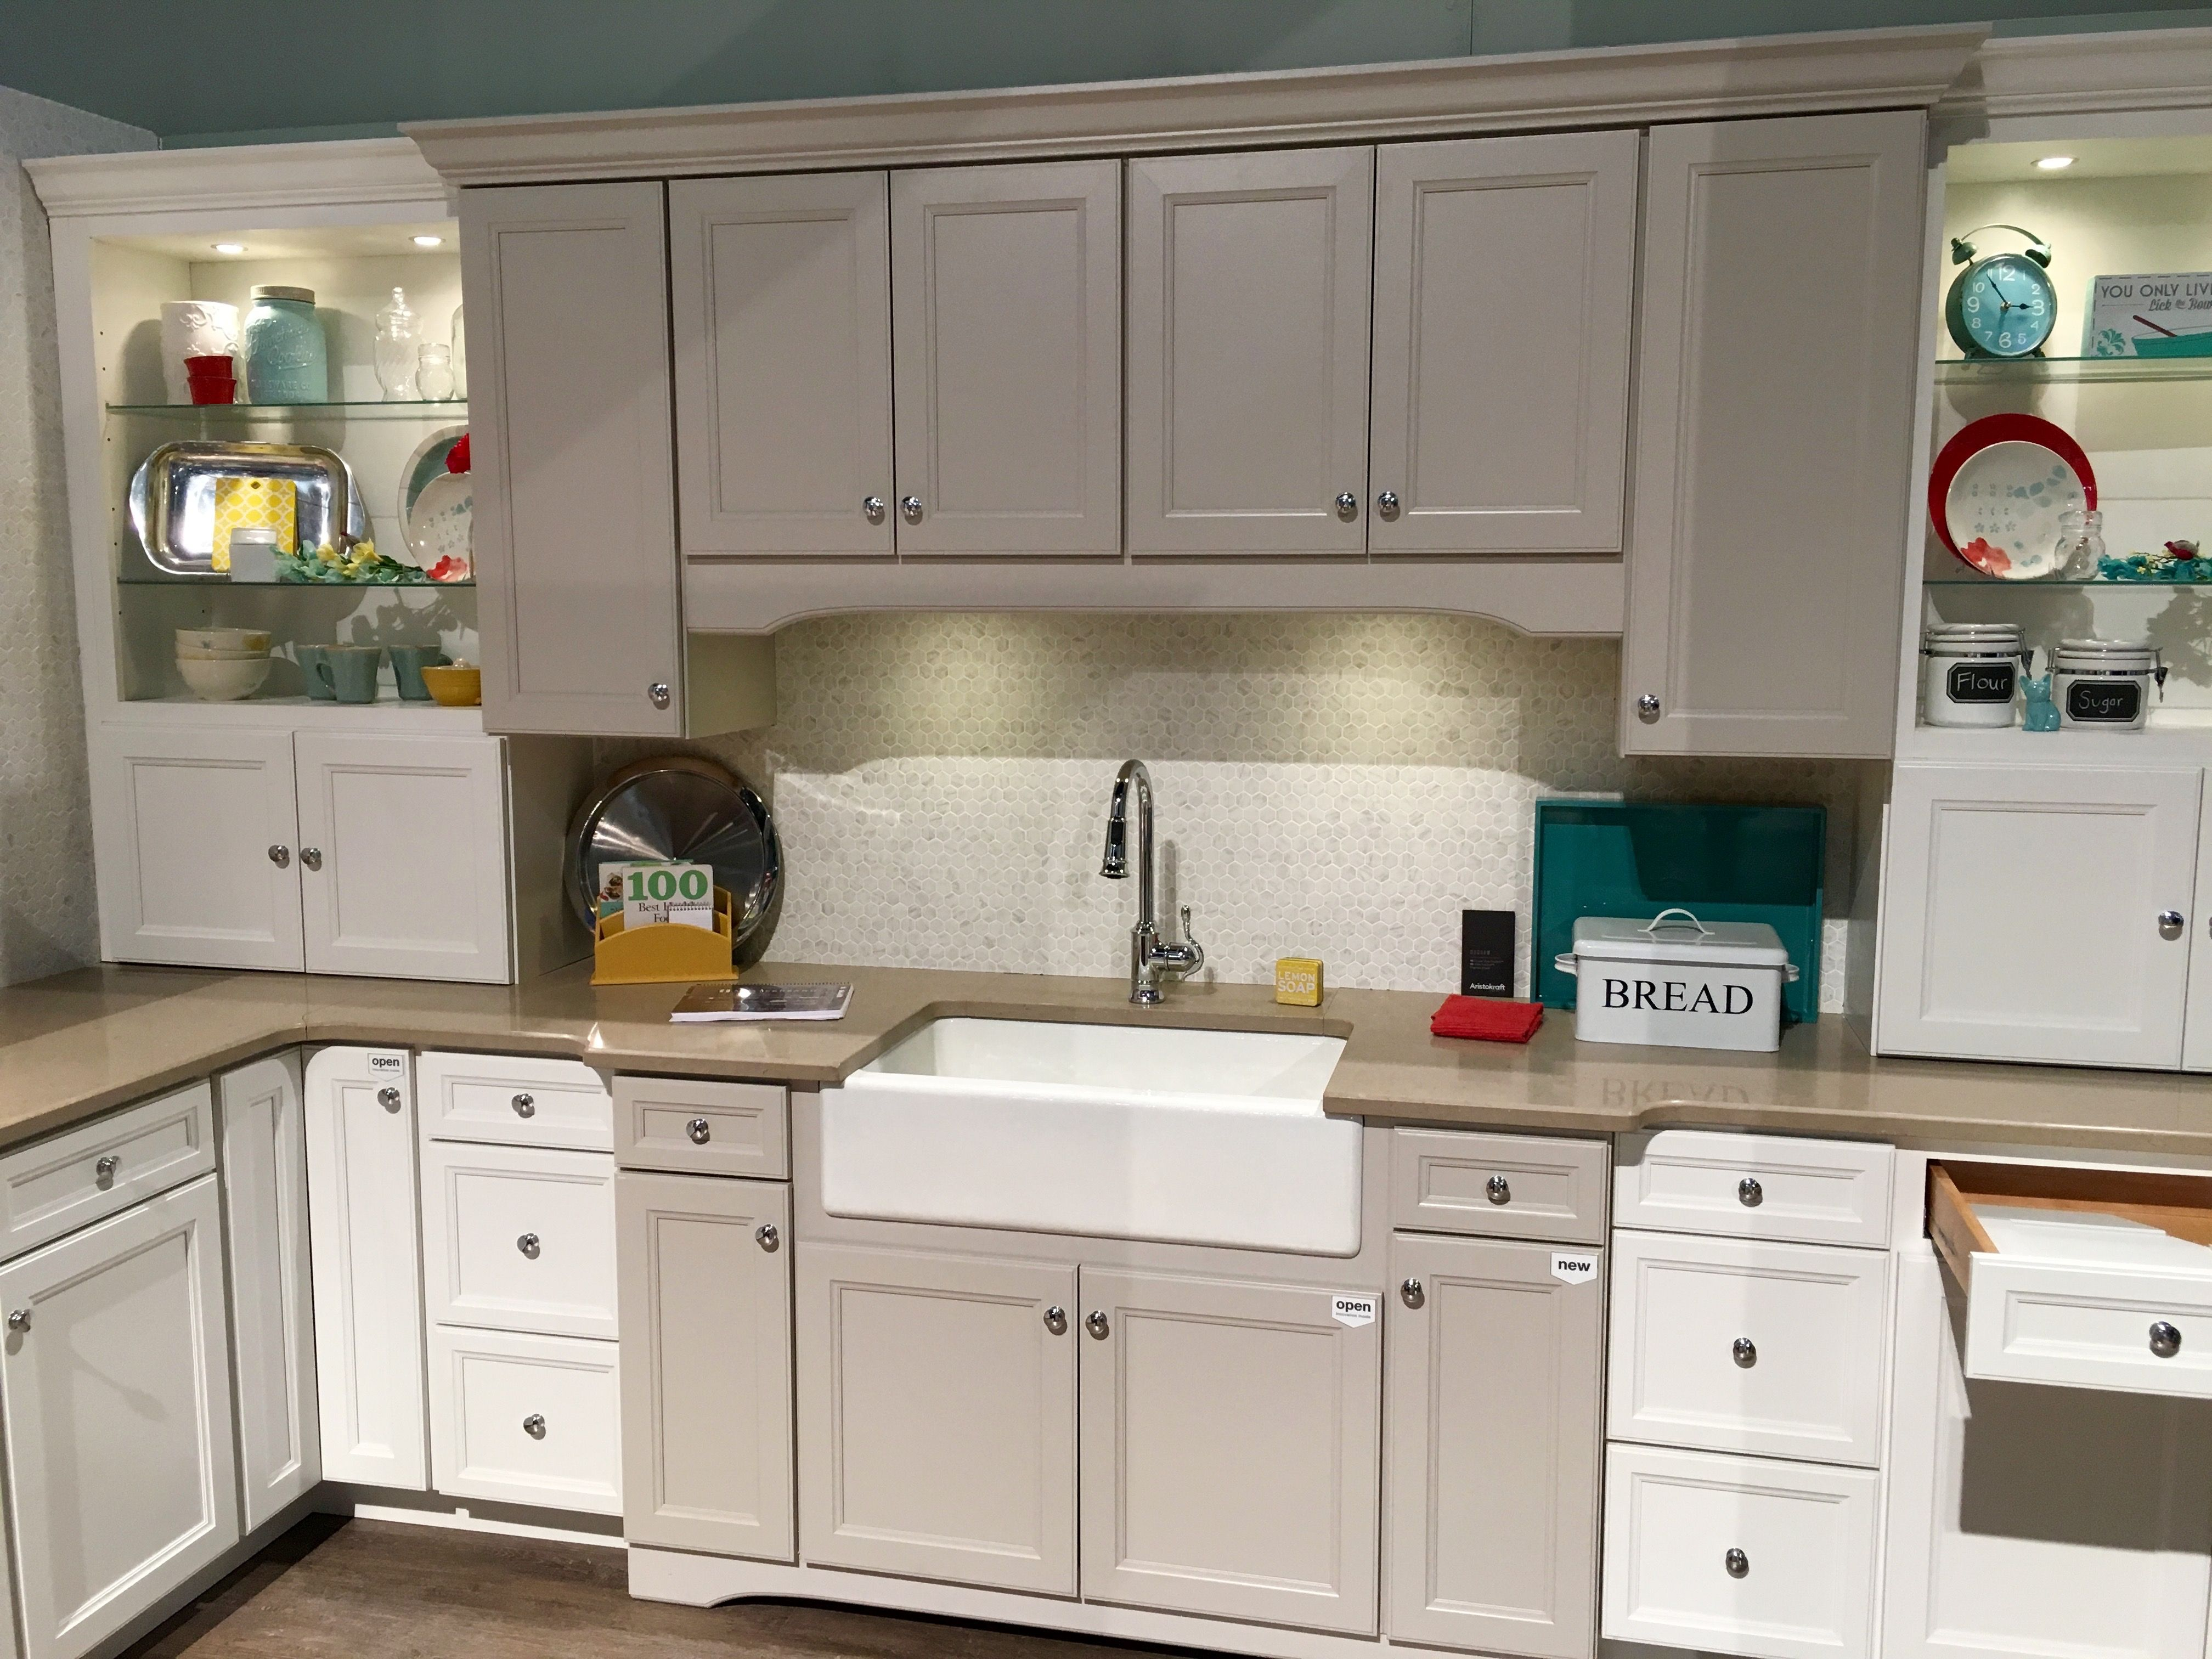 The latest kitchen trends we have seen in 2016 is combining kitchen cabinet colors. Learn more on how to take on this new trend in home building. & Kitchen Trends Watch: Combining Kitchen Cabinet Colors